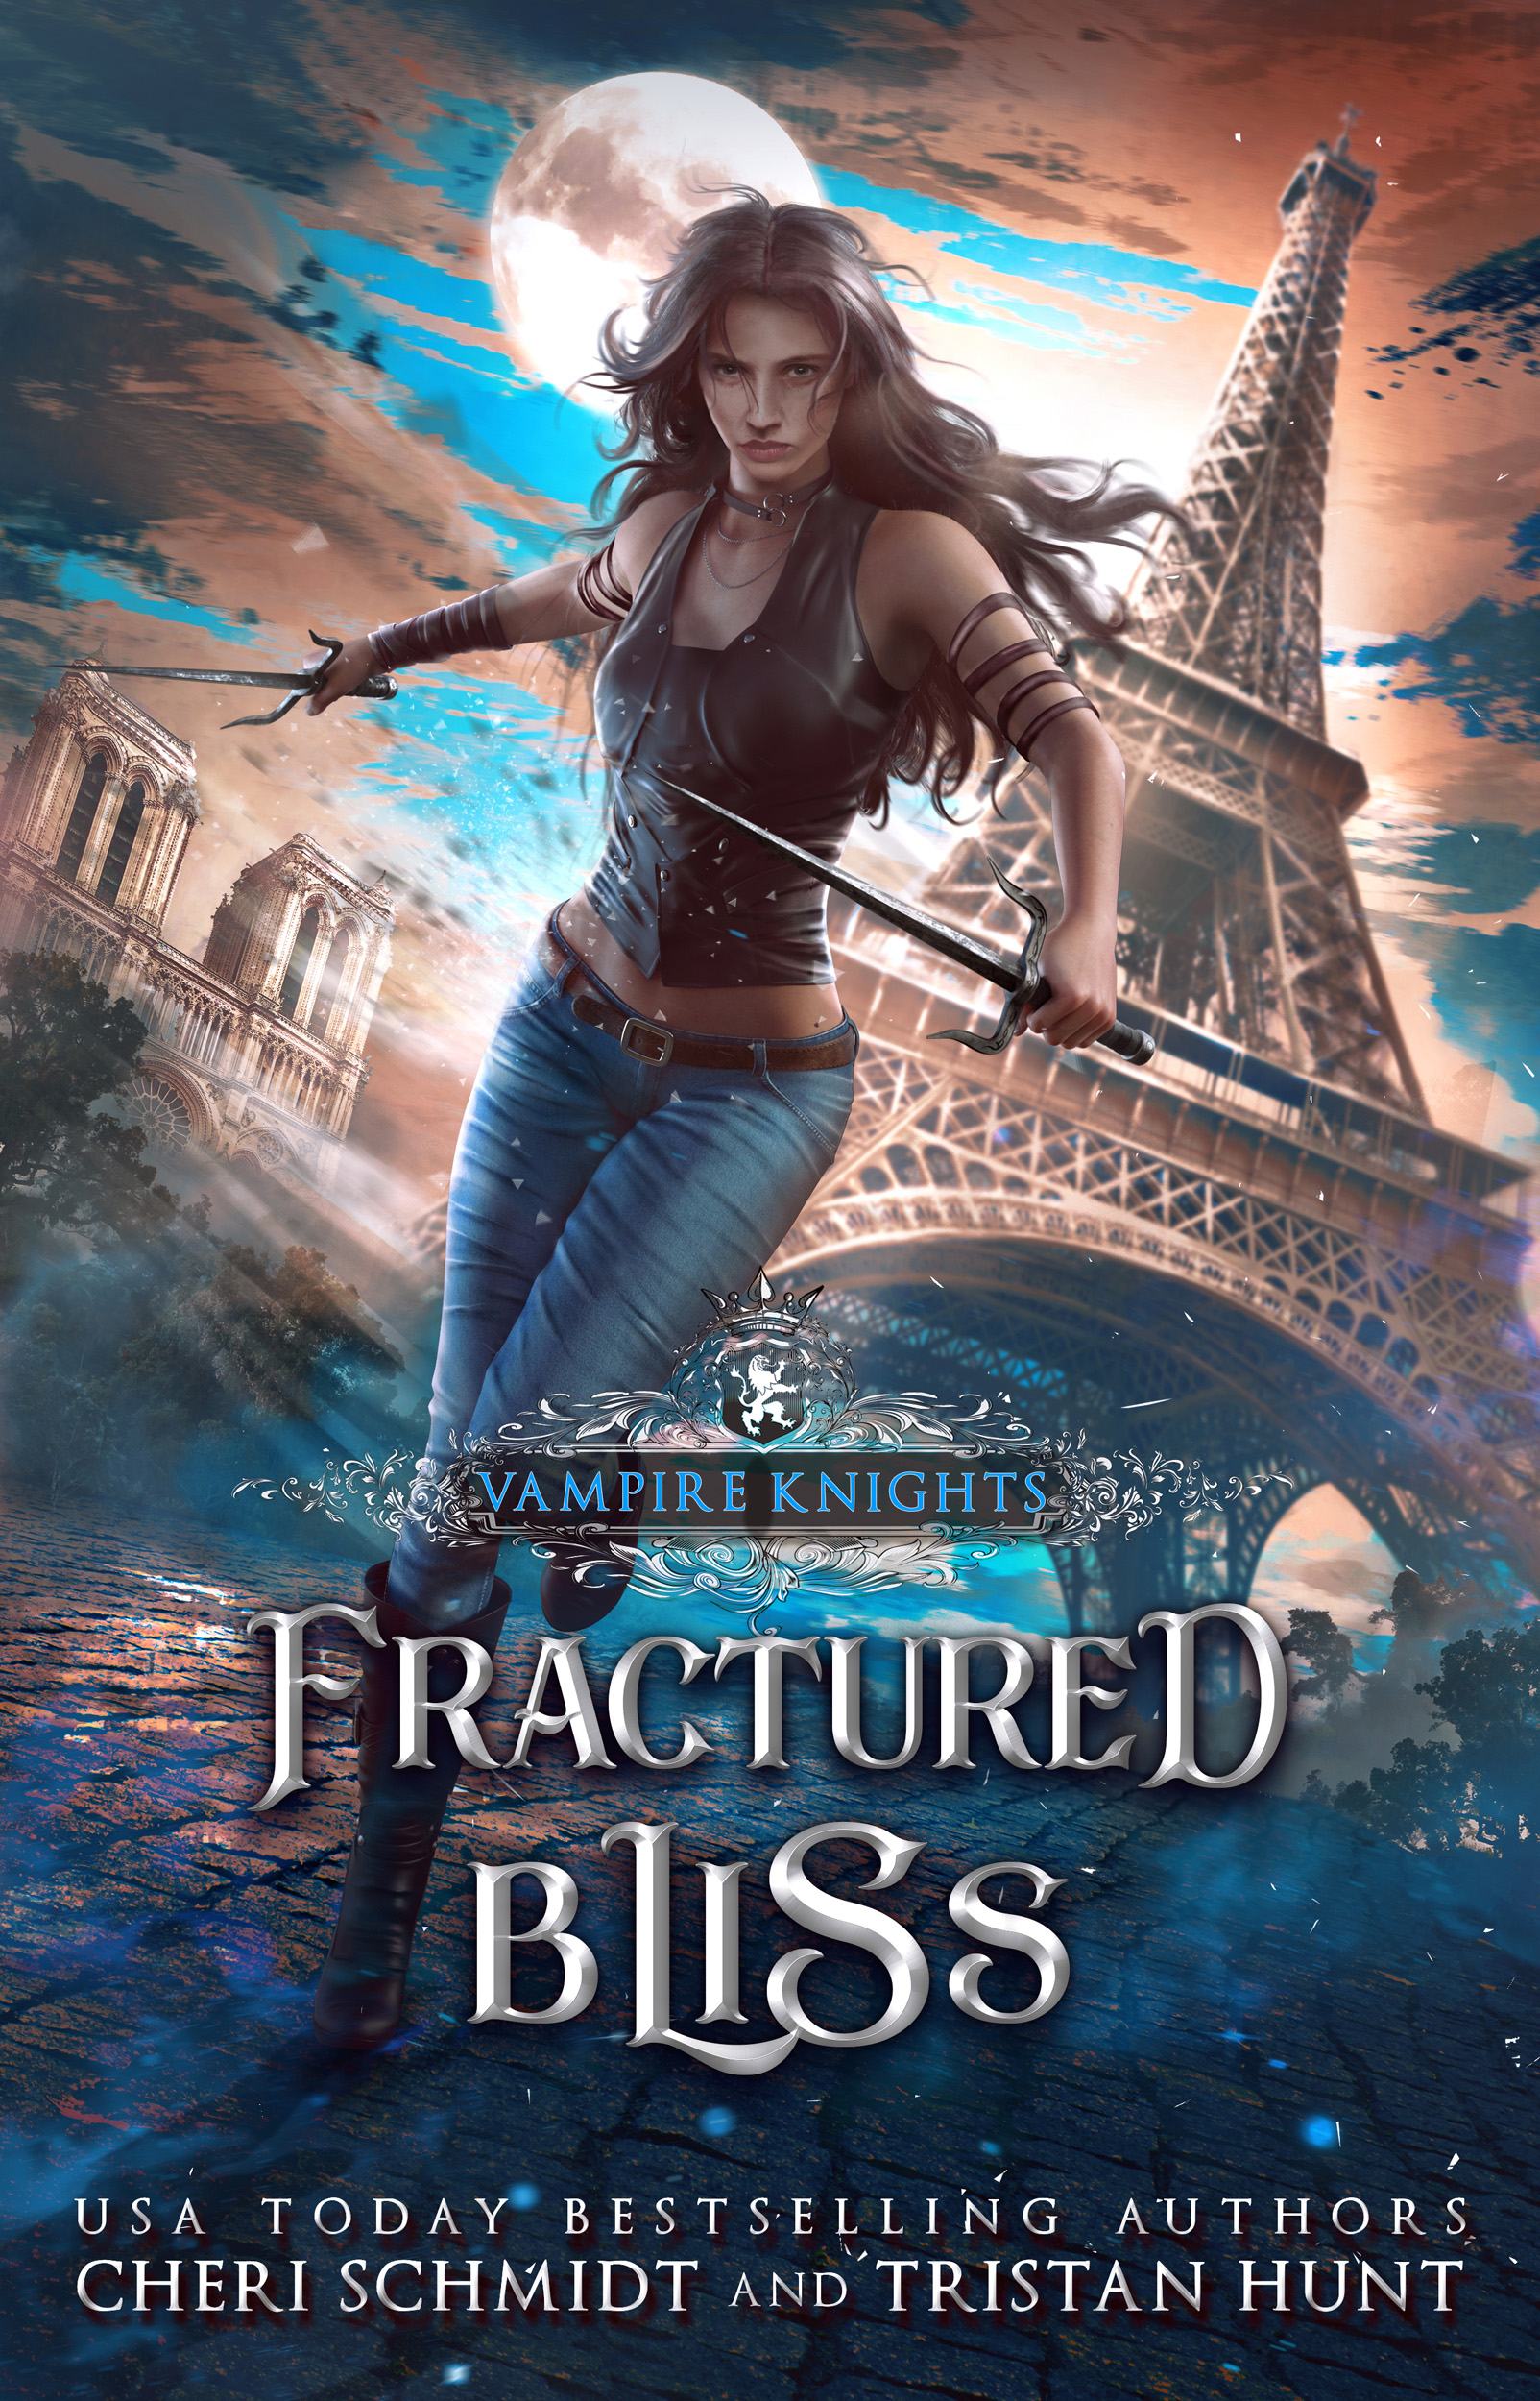 FINAL-8-9-18-Fractured Bliss final front cover-reduced.jpg